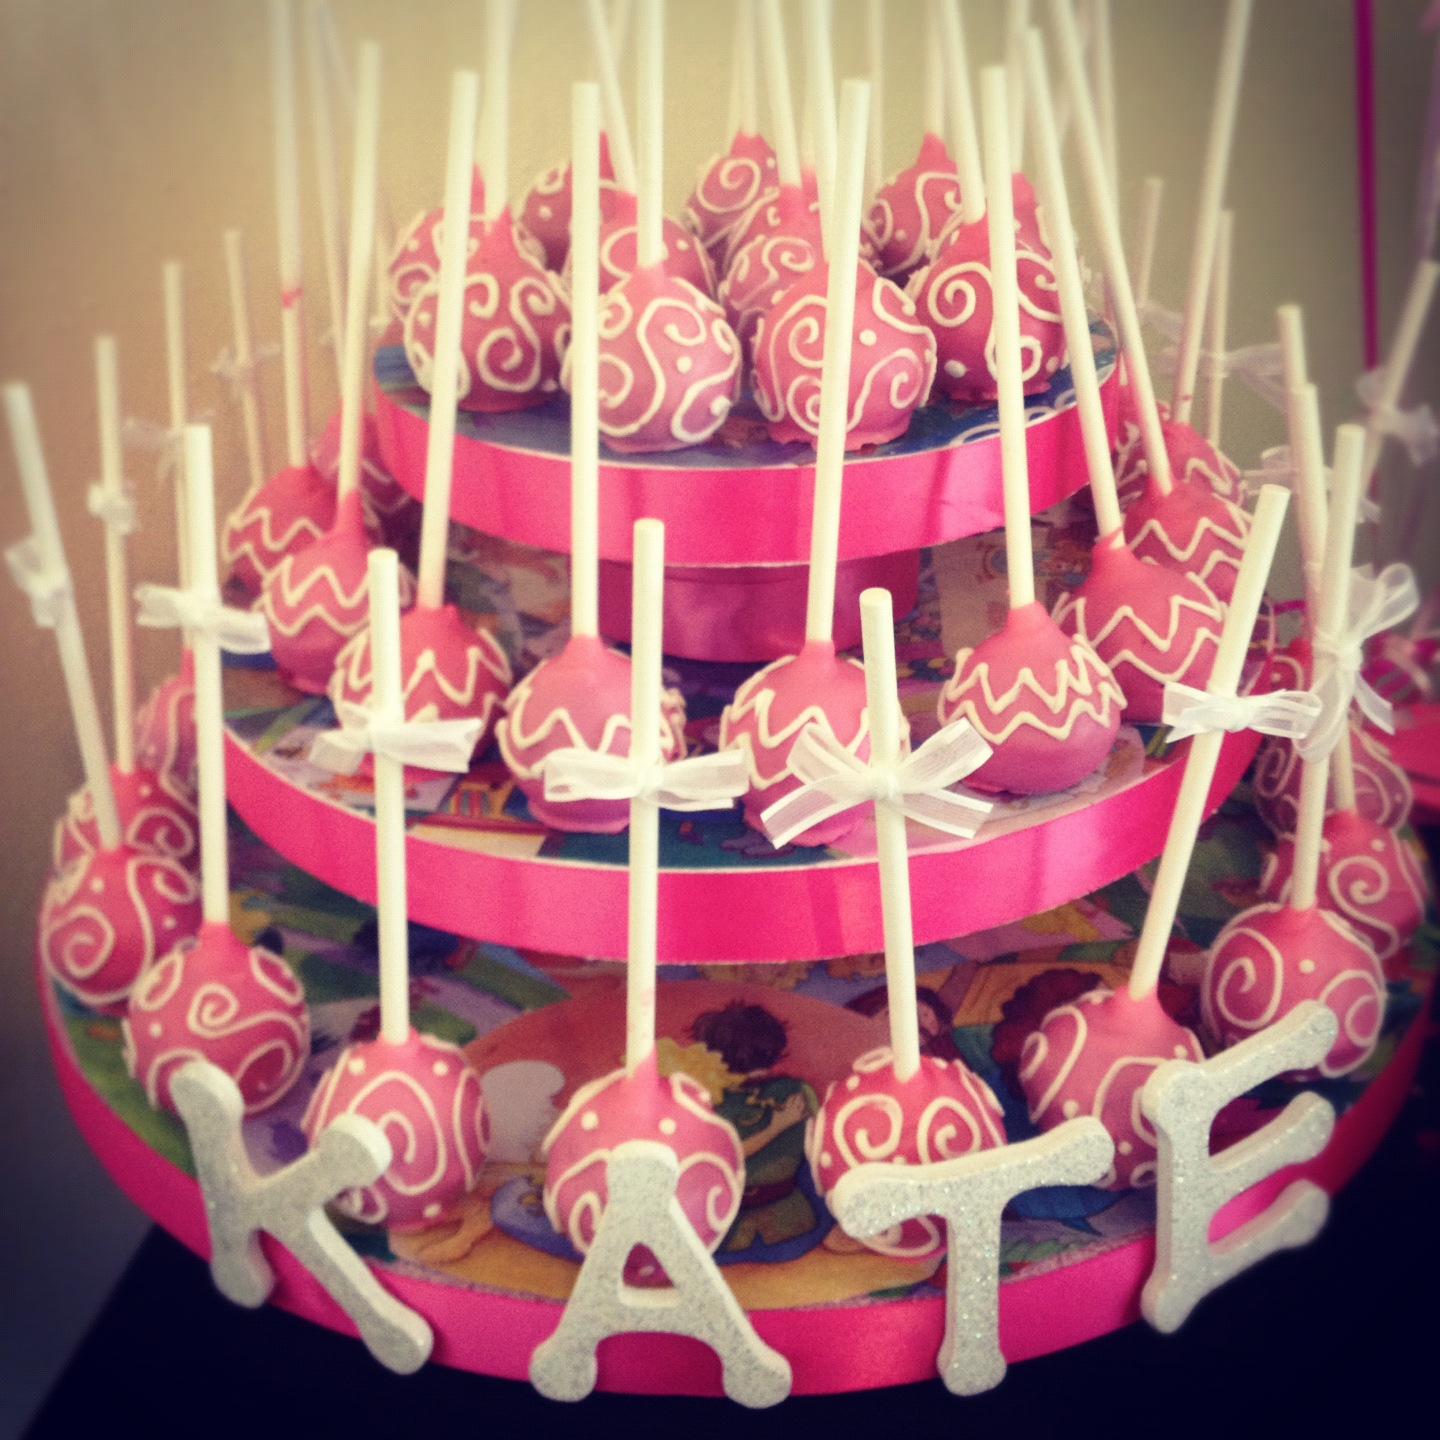 How to Make a Cake Pop / Cupcake Stand Homemaker Chic